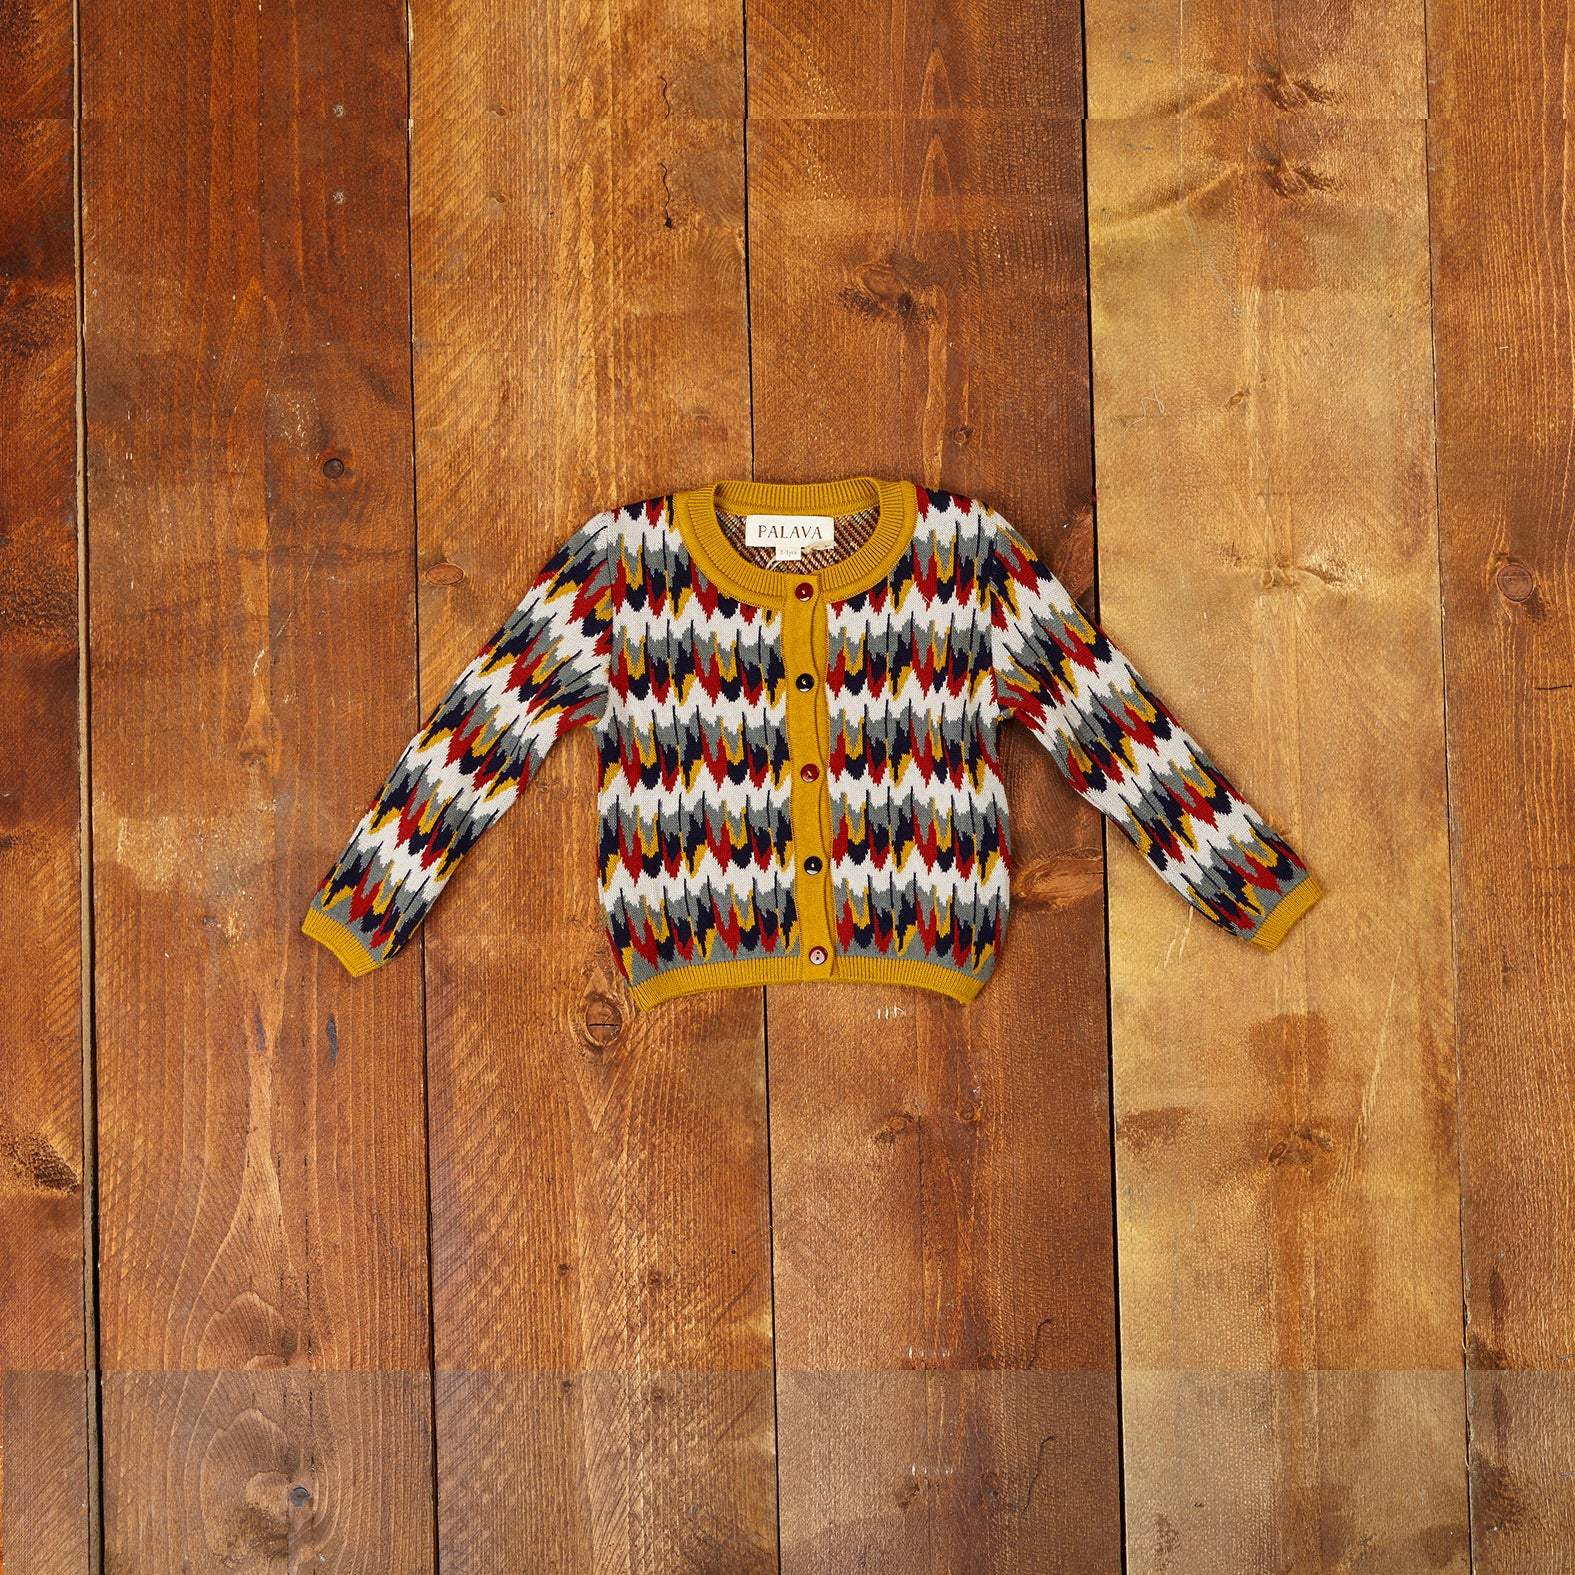 Children's Cardigan - Marbled Feathers - Palava